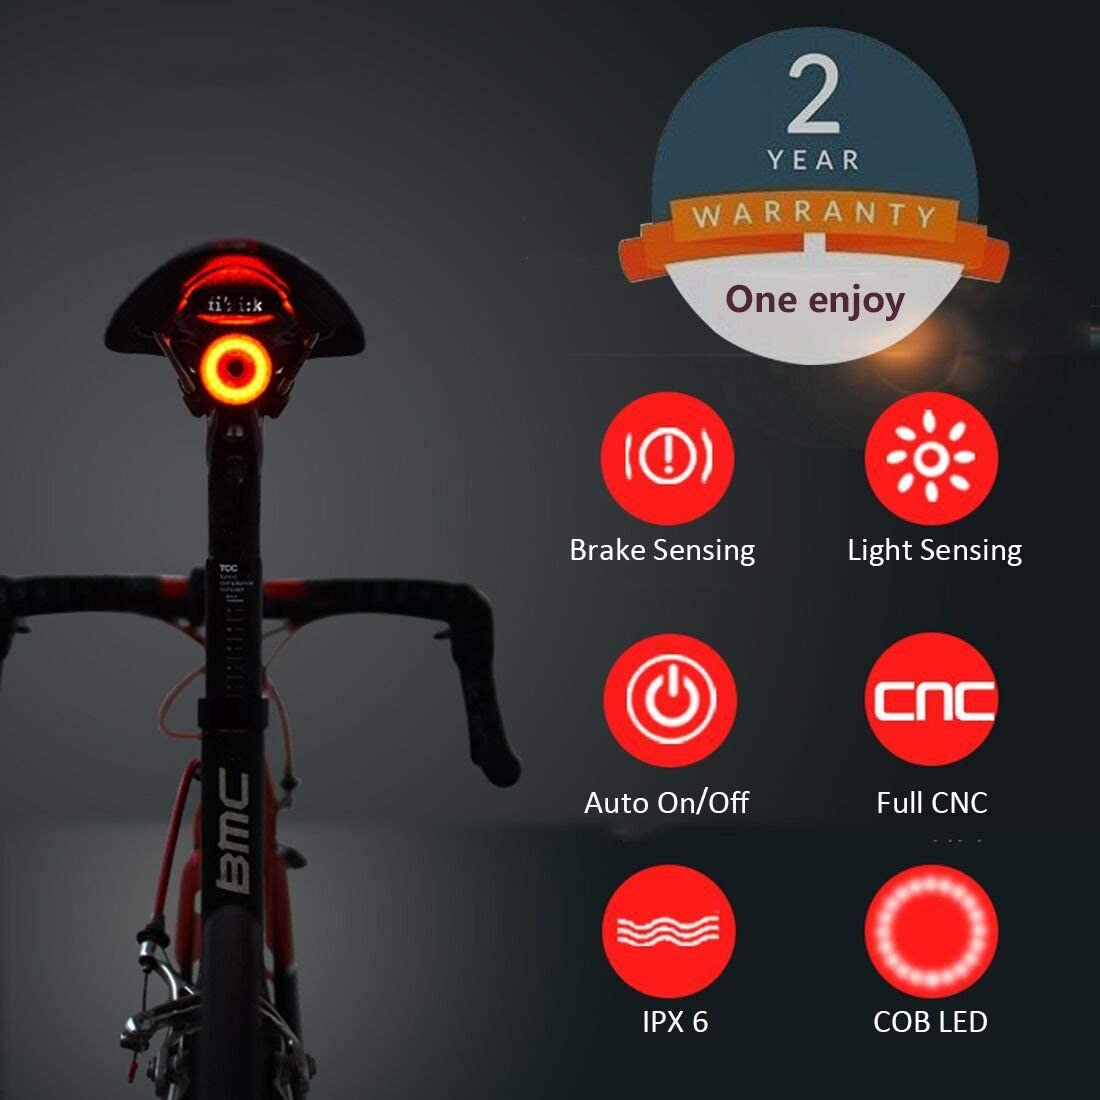 Smart Bike Tail Light Ultra Bright, Bike Light Rechargeable Auto On Off, IPX6 Waterproof LED Bicycle Lights, High Intensity Rear Accessories Fits Any Road Bikes